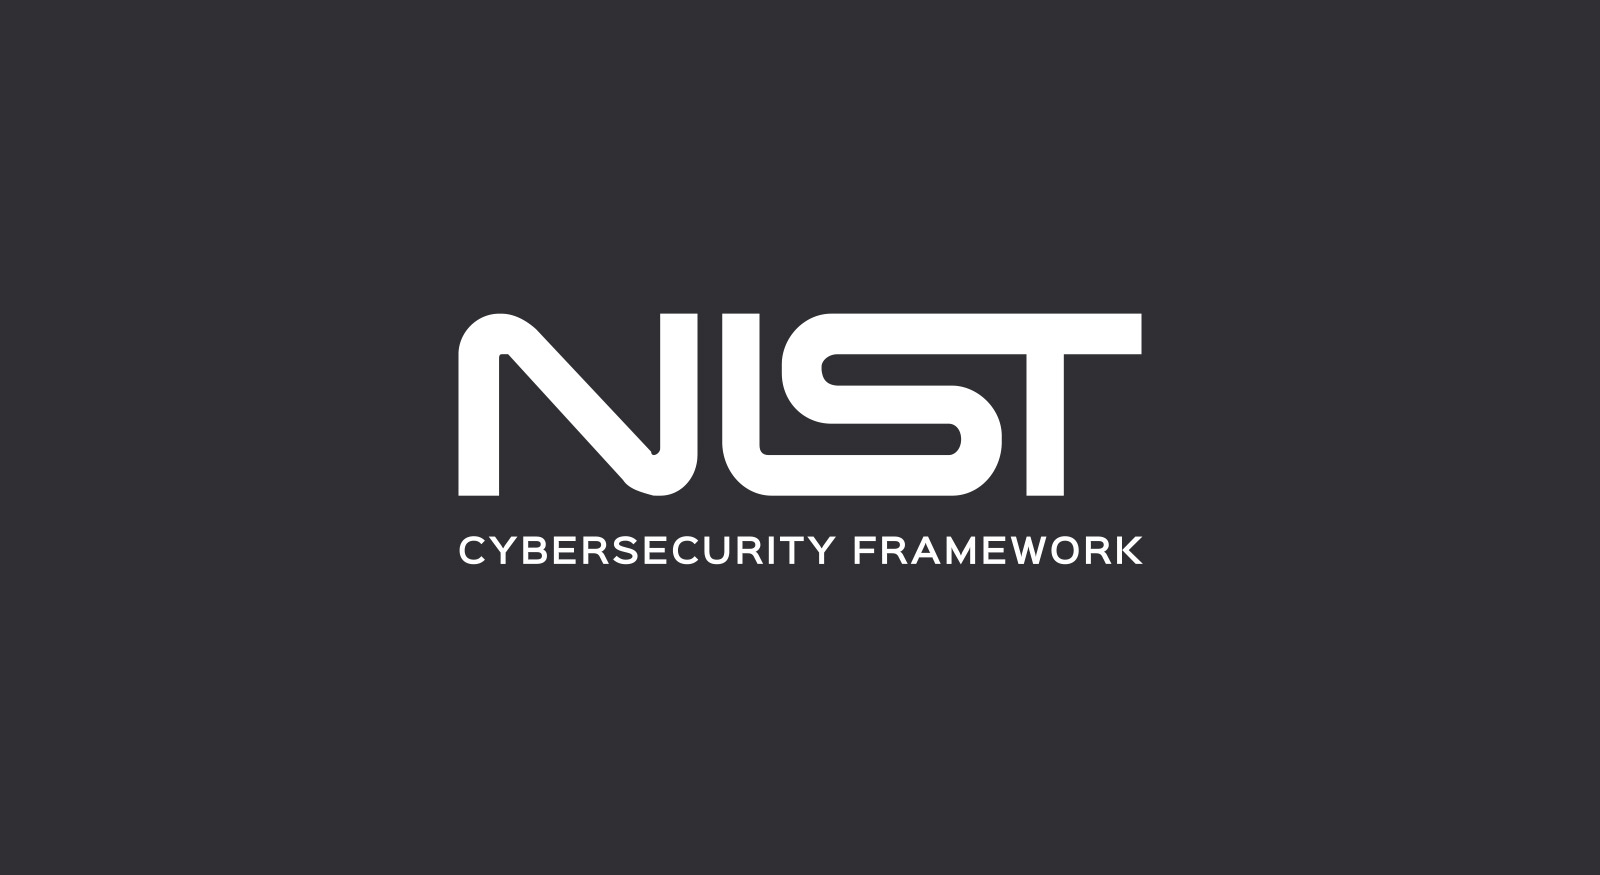 How To Comply With The 5 Functions Of The Nist Cybersecurity